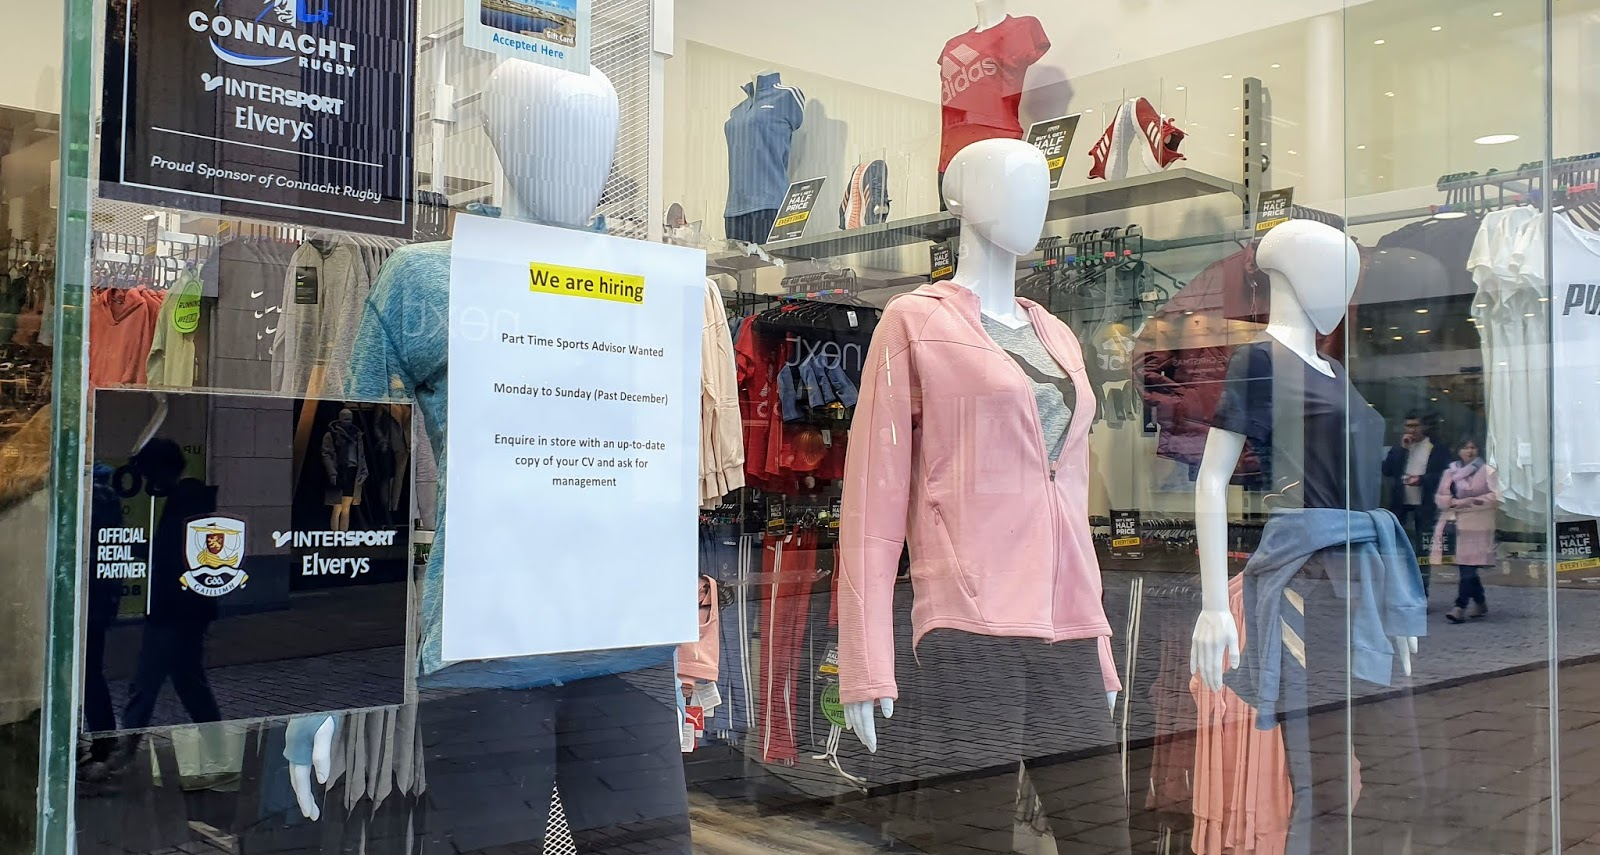 Shop window with three bald, sporty mannequins on display - also a sign about Elverys Intersport Galway, proud sponsors of Connacht Rubgy in 2019